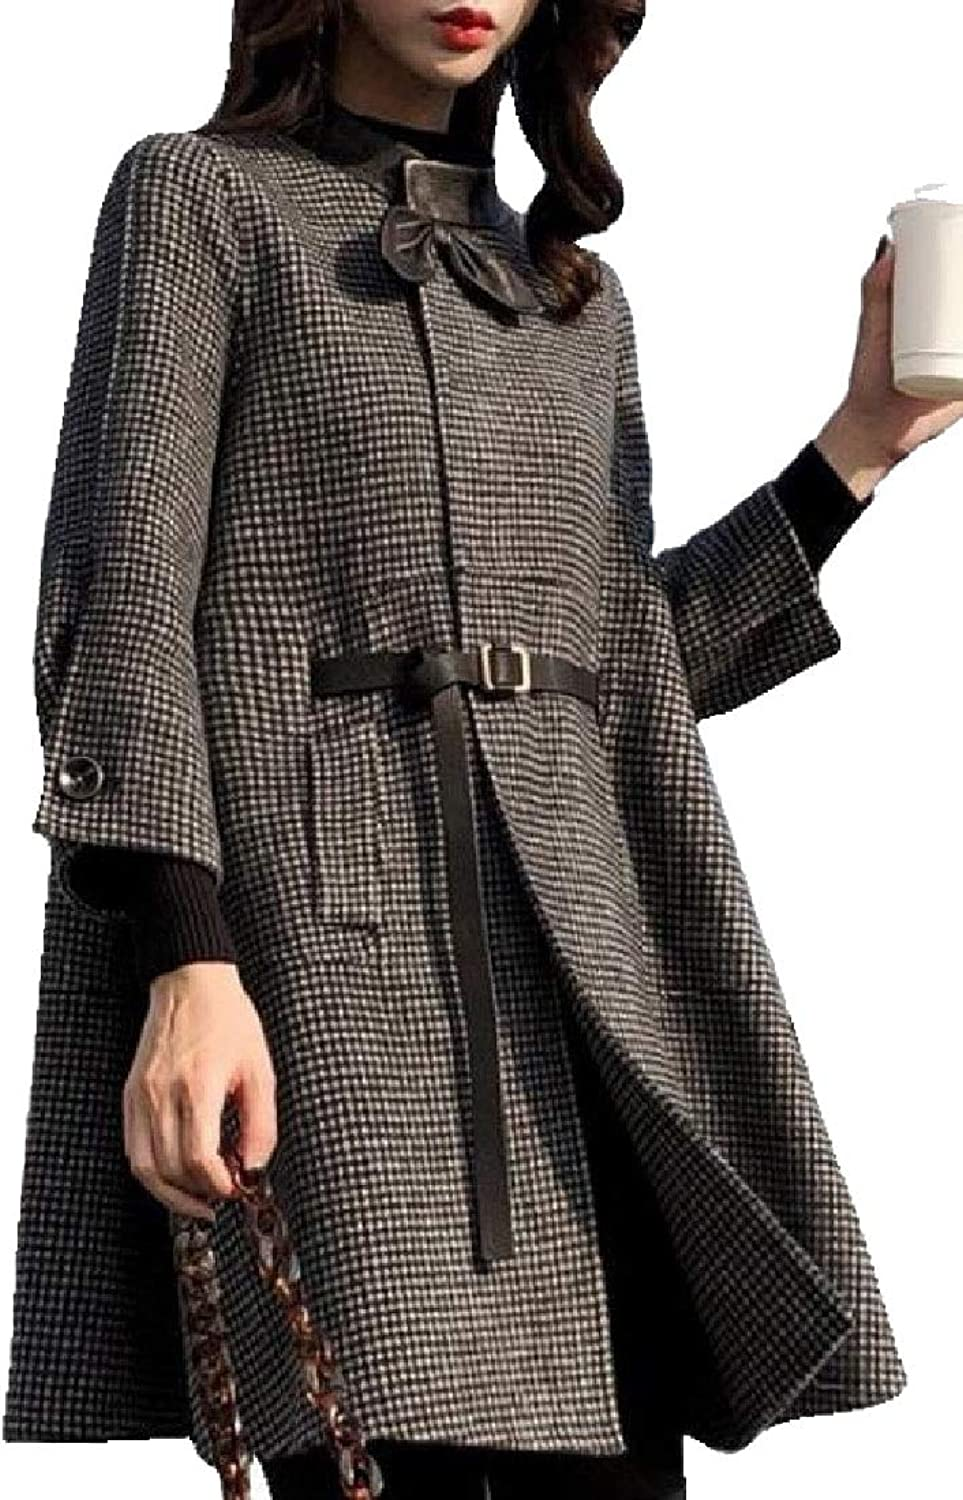 Maweisong Women's Houndstooth Winter A Line Wool LongSleeves Coats